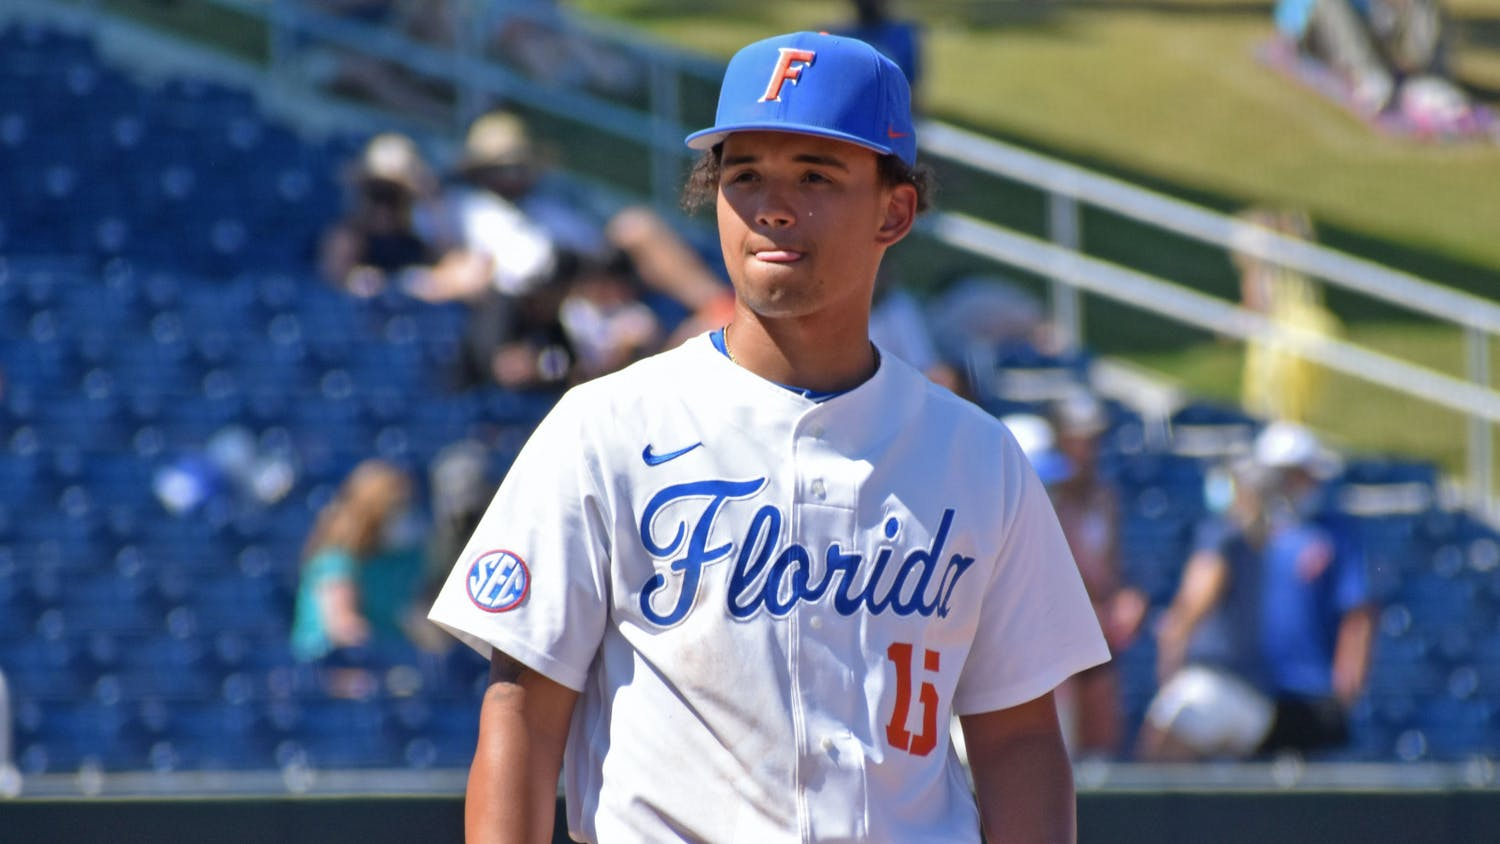 Butler doubled into the left-center gap before left fielder Sterlin Thompson drove an RBI-single into the same vicinity of the outfield. Photo from UF-Jacksonville game March 14.